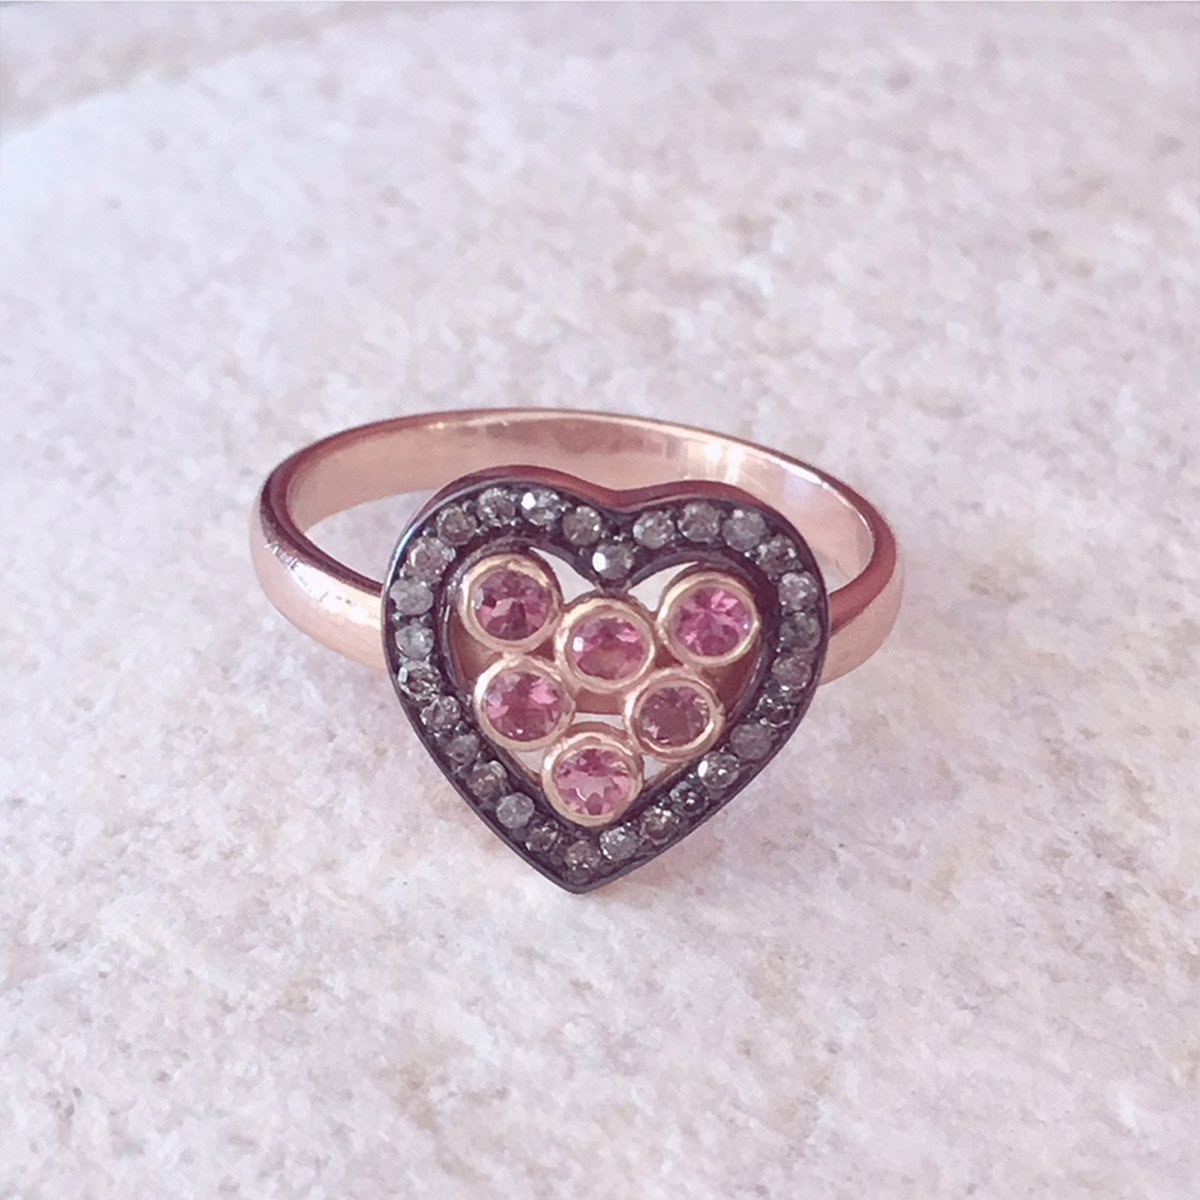 Diamond Heart Pink Tourmaline Ring  -Latelita London